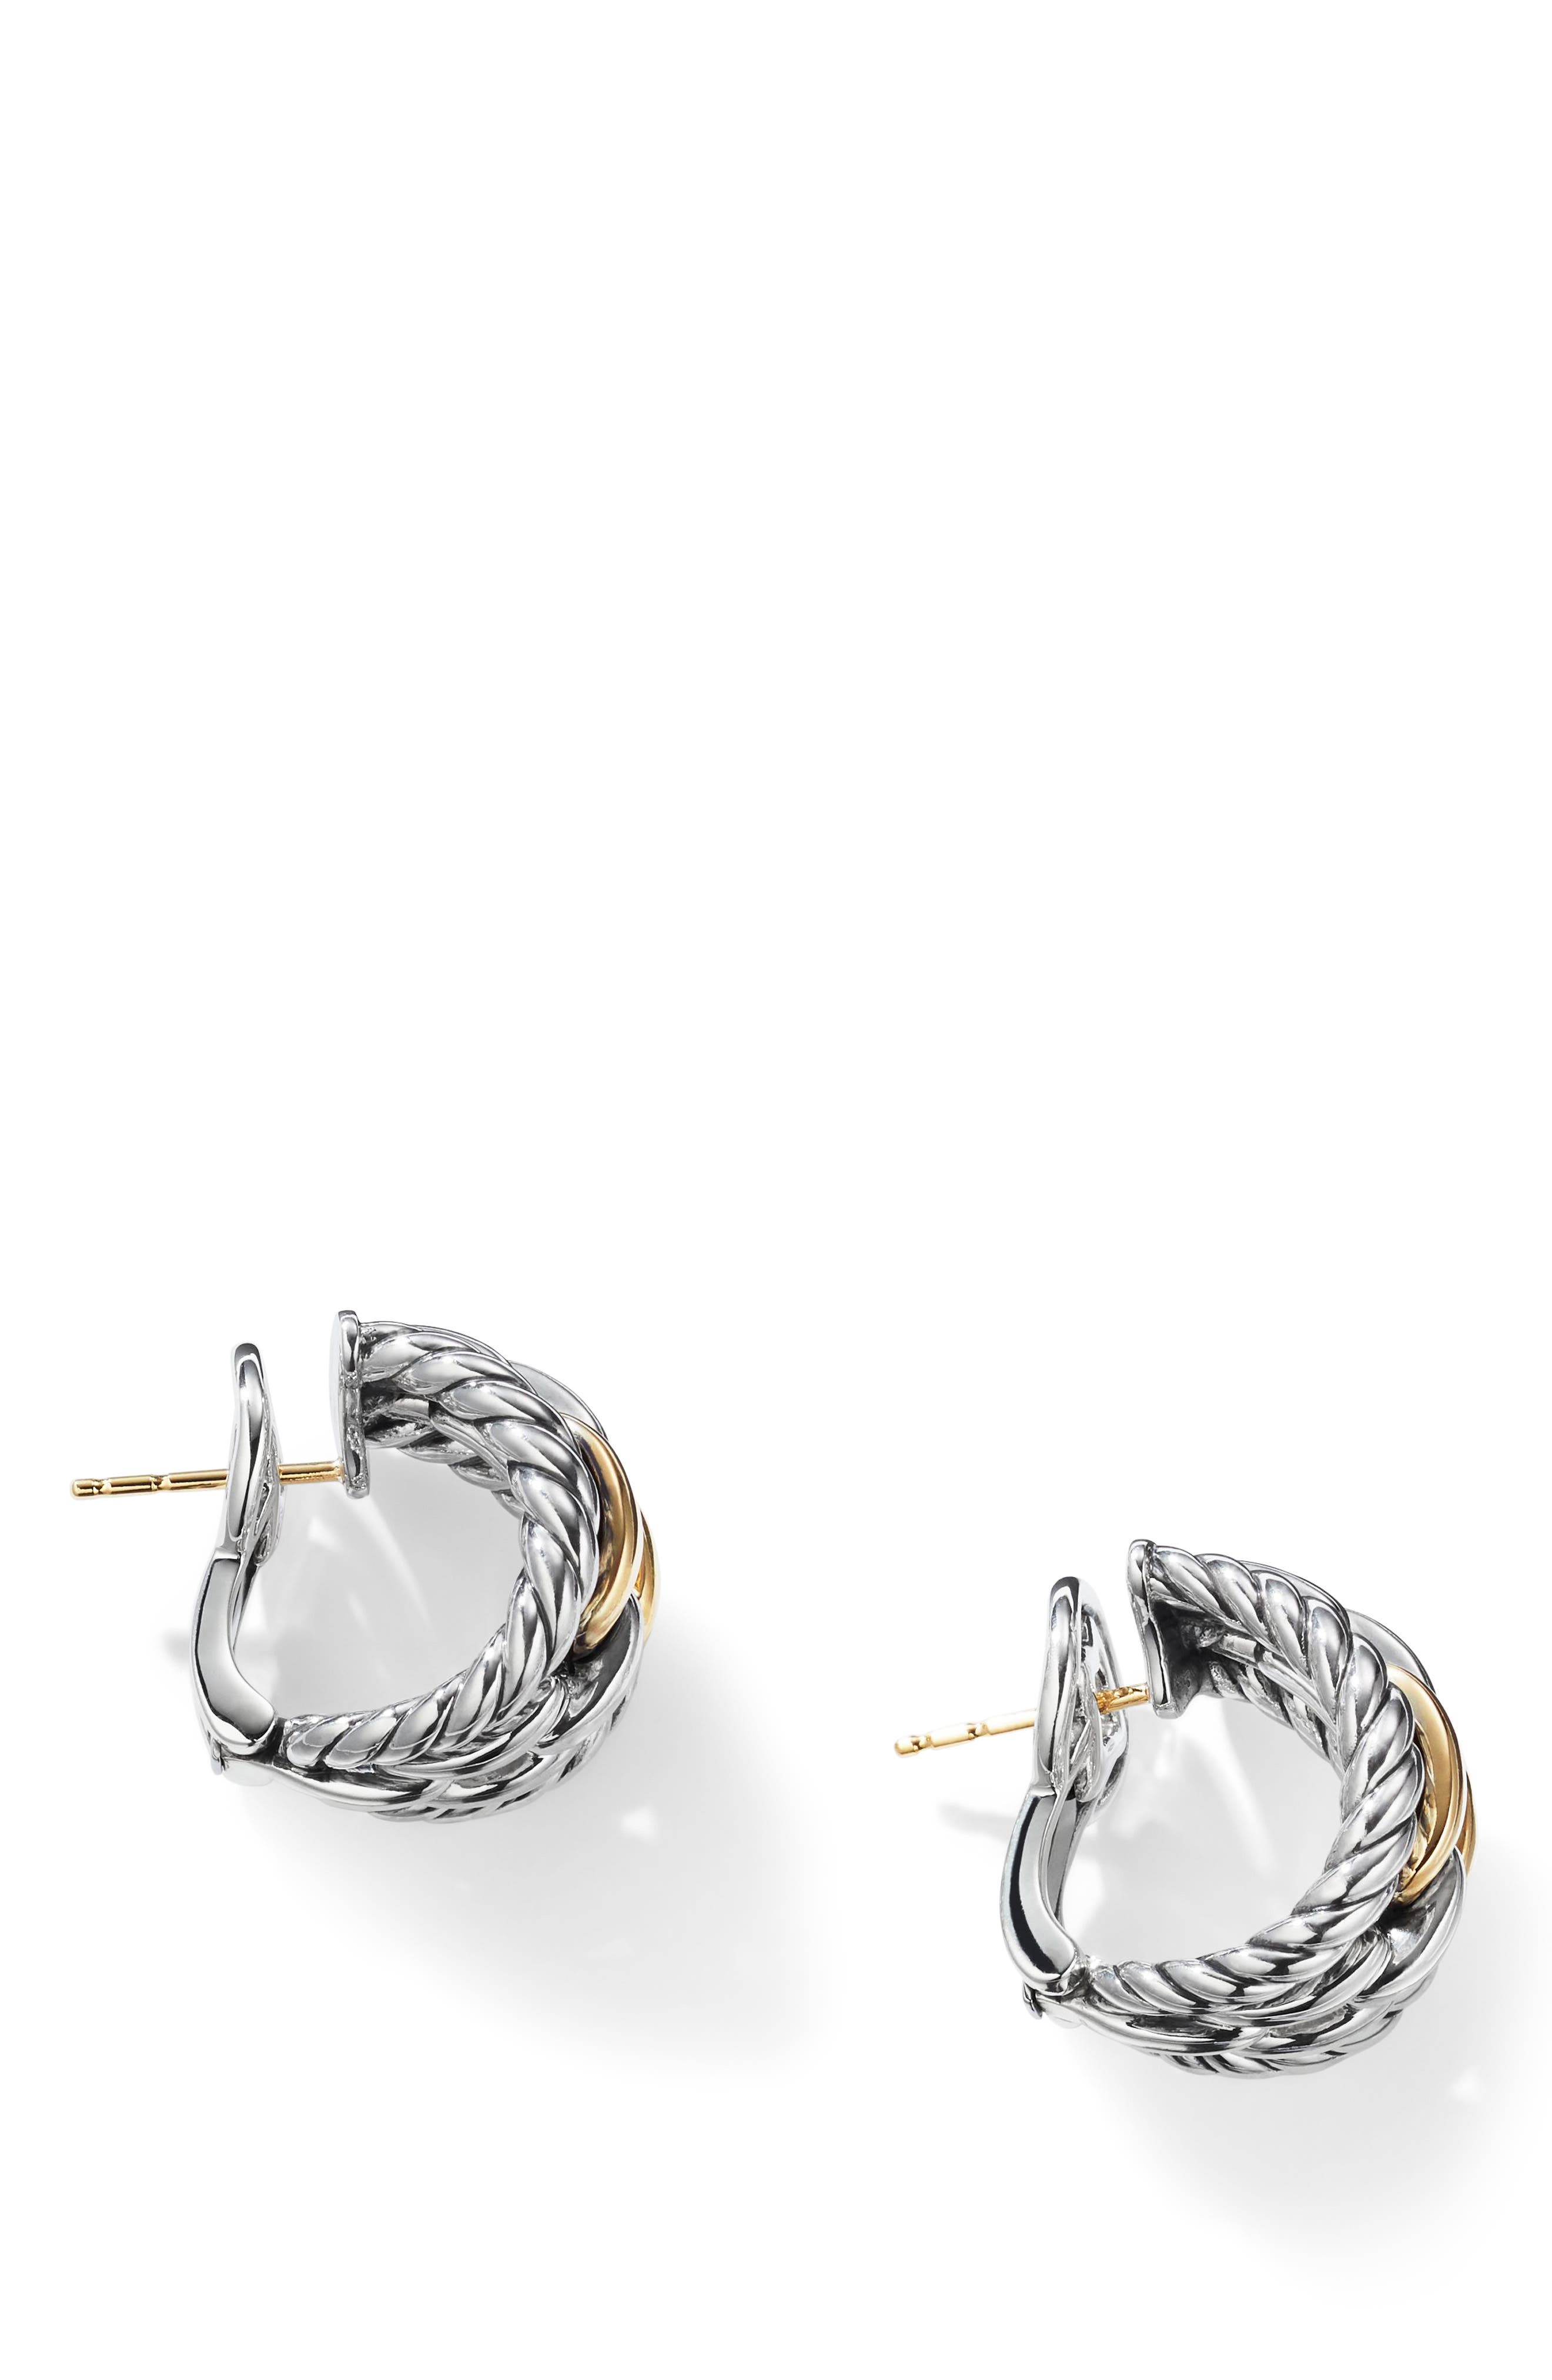 Wellesley Link Hoop Earrings with 18K Gold,                             Alternate thumbnail 2, color,                             18K YELLOW GOLD/ SILVER